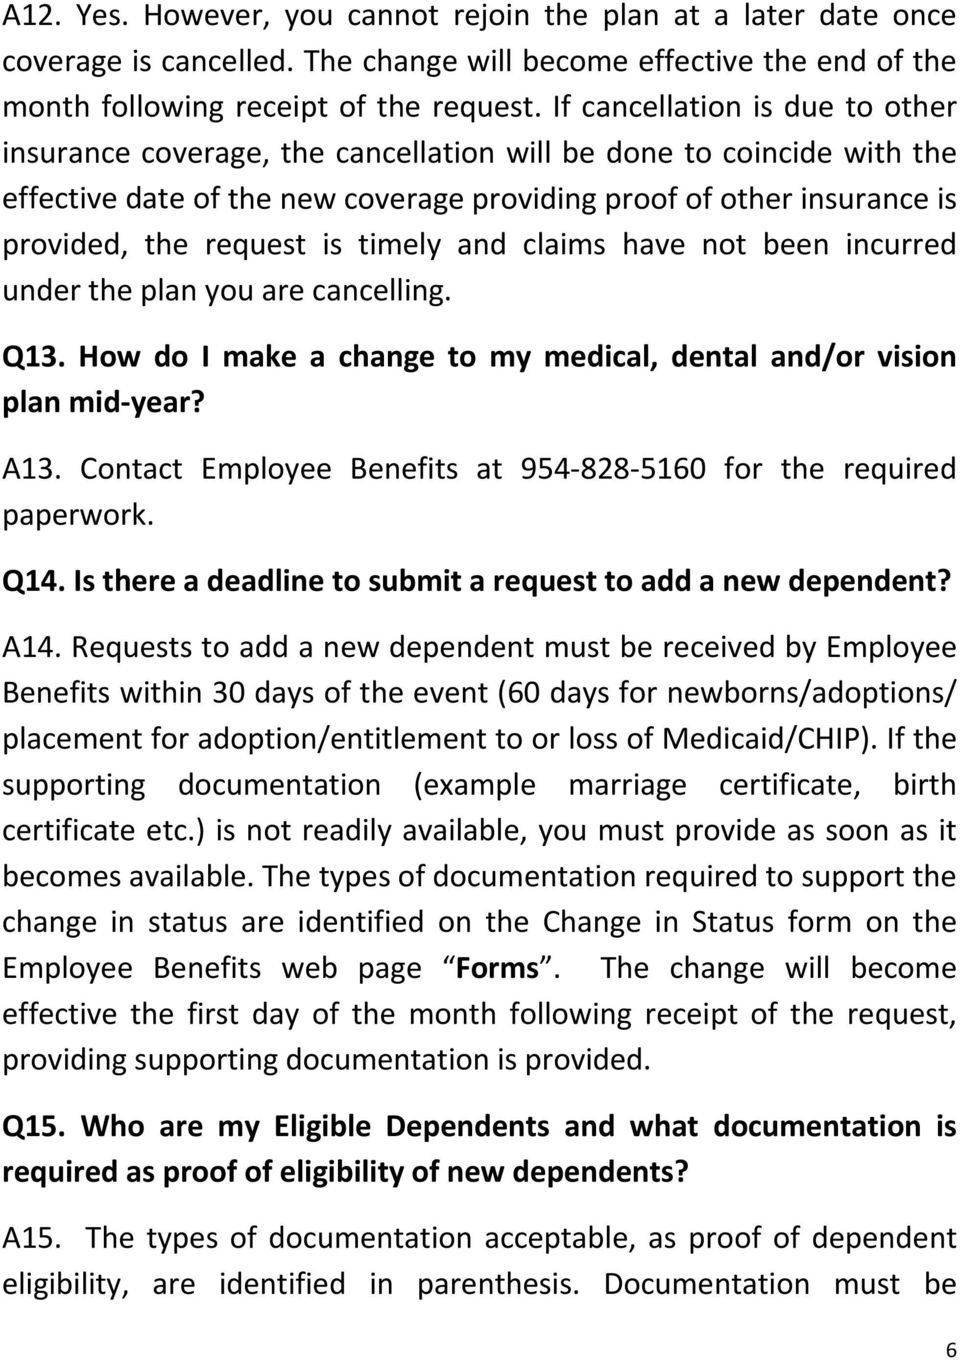 is timely and claims have not been incurred under the plan you are cancelling. Q13. How do I make a change to my medical, dental and/or vision plan mid year? A13.